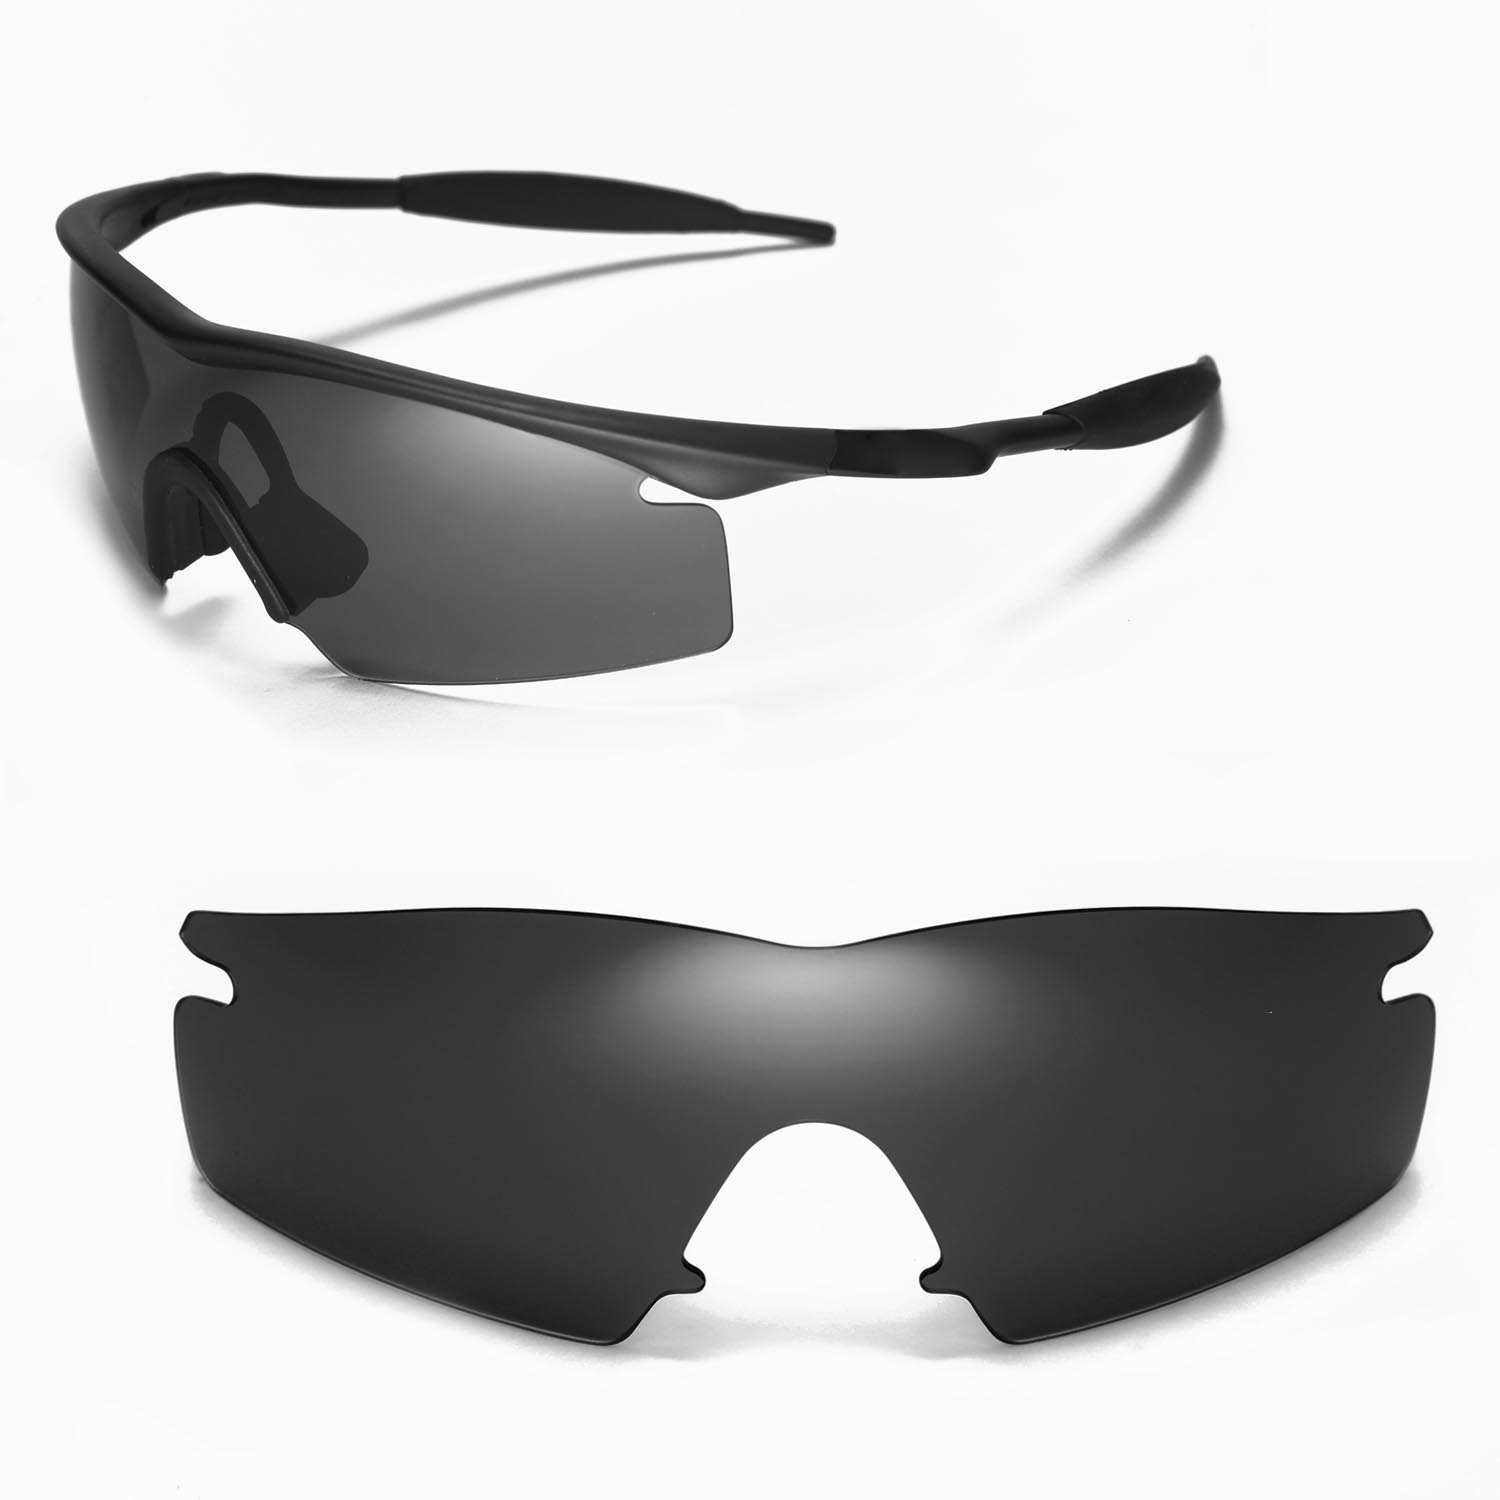 0d0dfd3ca6 Details about New WL Polarized Black Replacement Lenses For Oakley M Frame  Strike Sunglasses